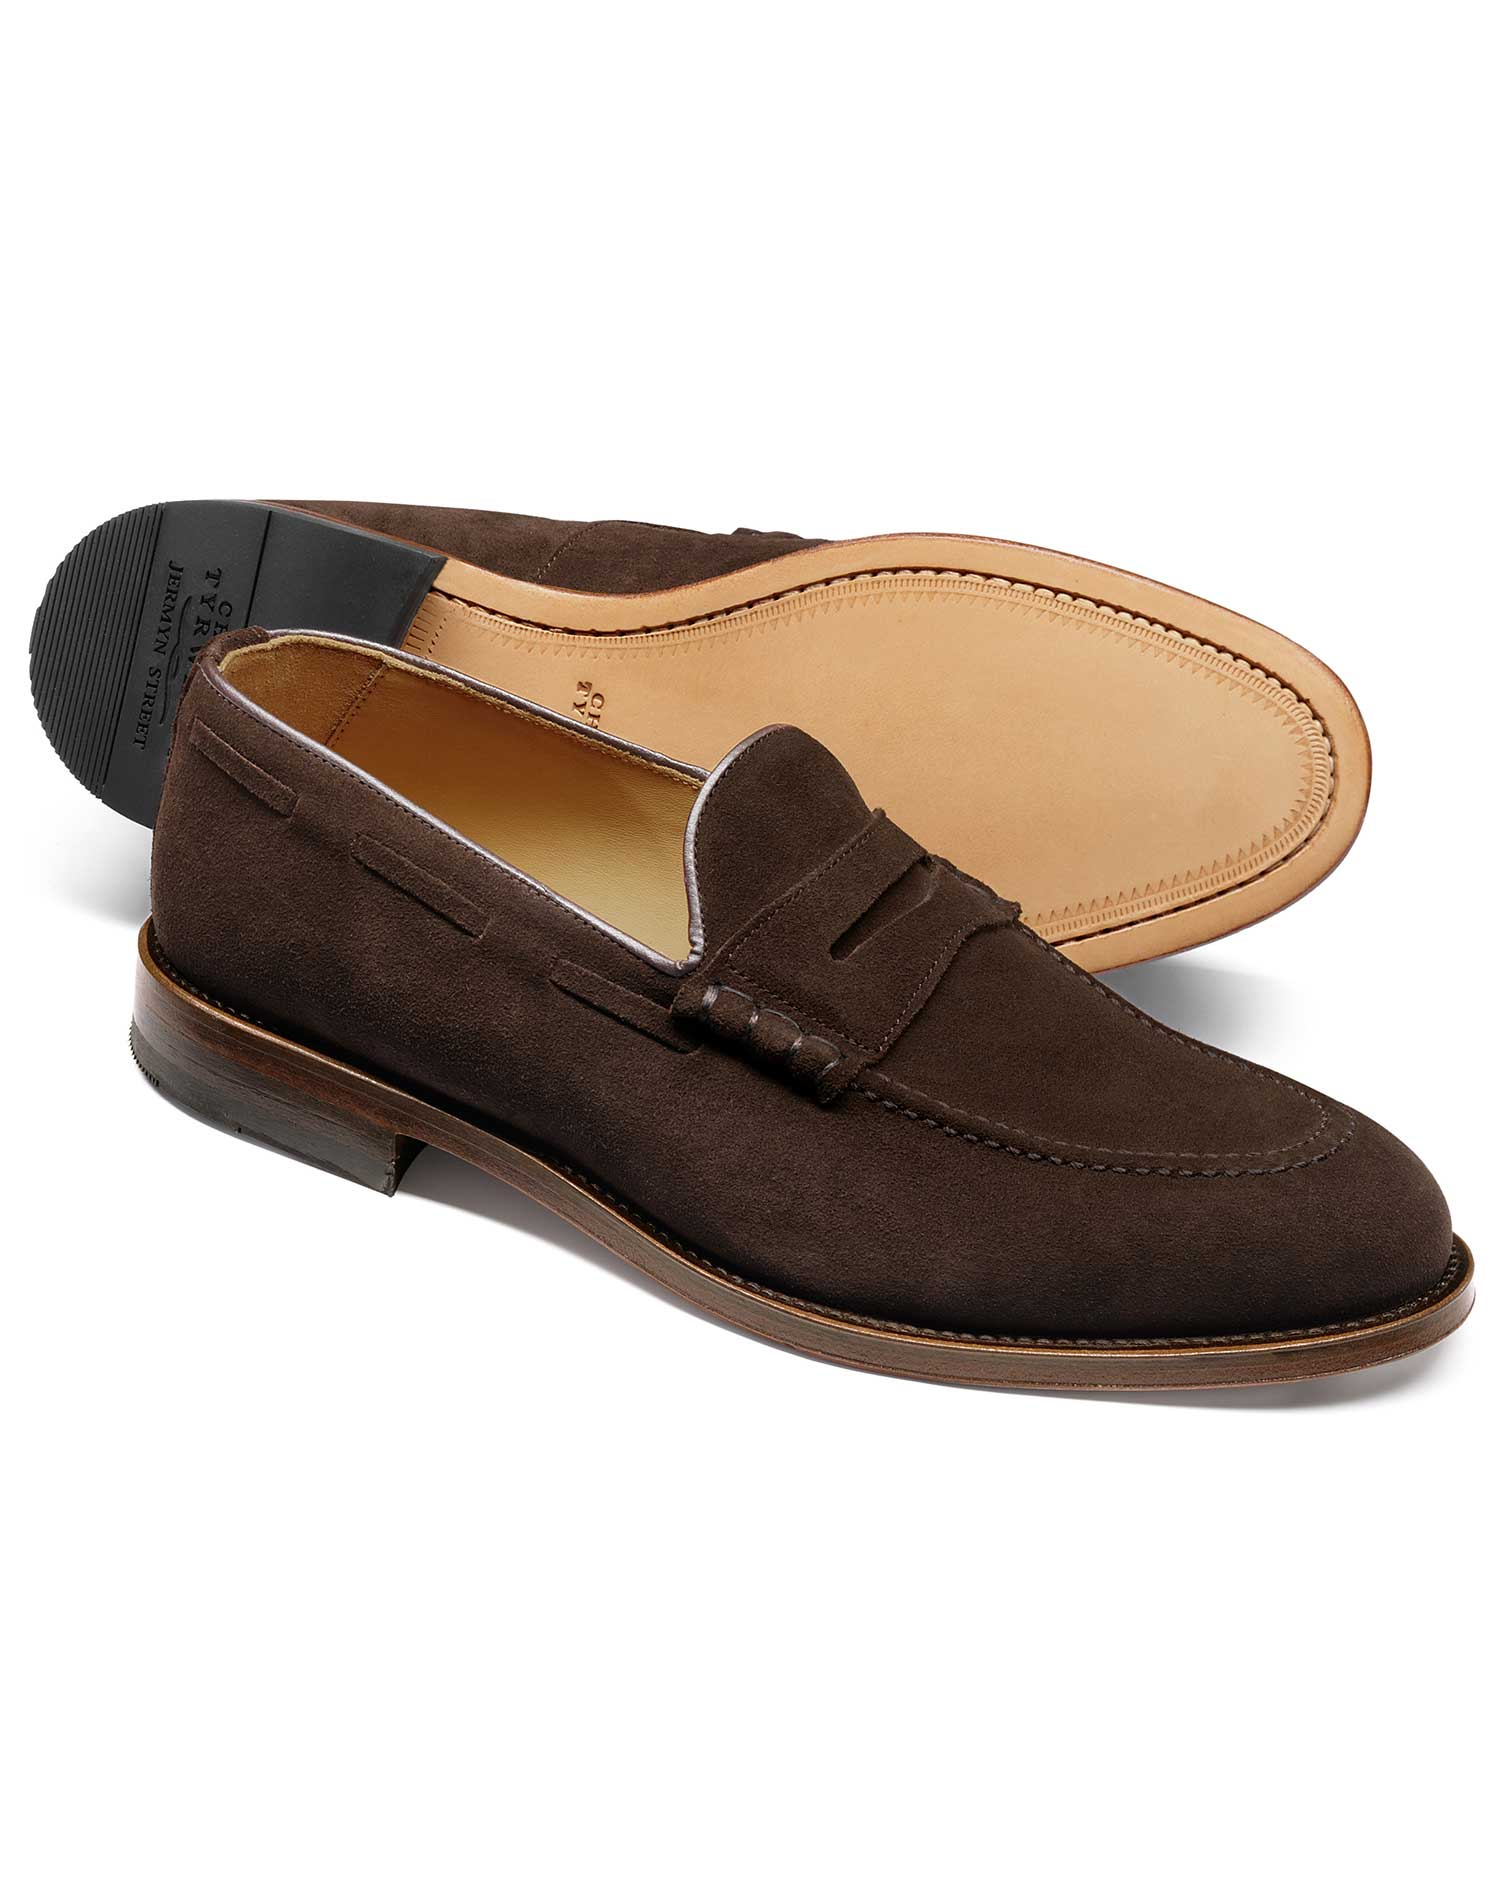 Chocolate Suede Penny Loafer Size 13 R by Charles Tyrwhitt